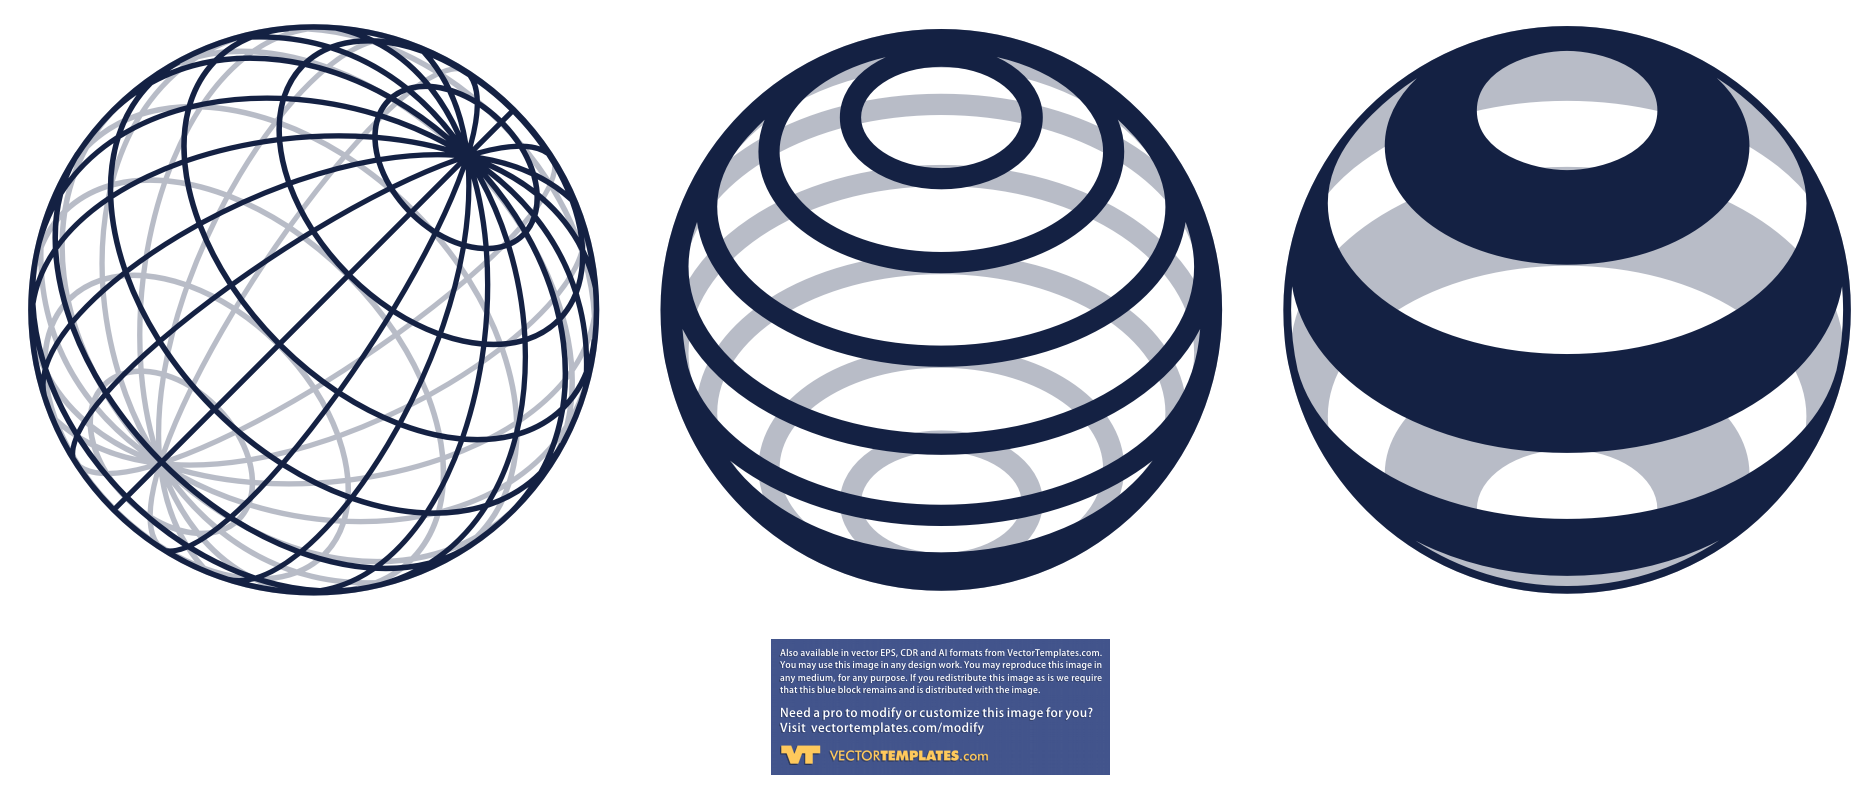 1875x787 Images Of Globes, Planets, Earth.